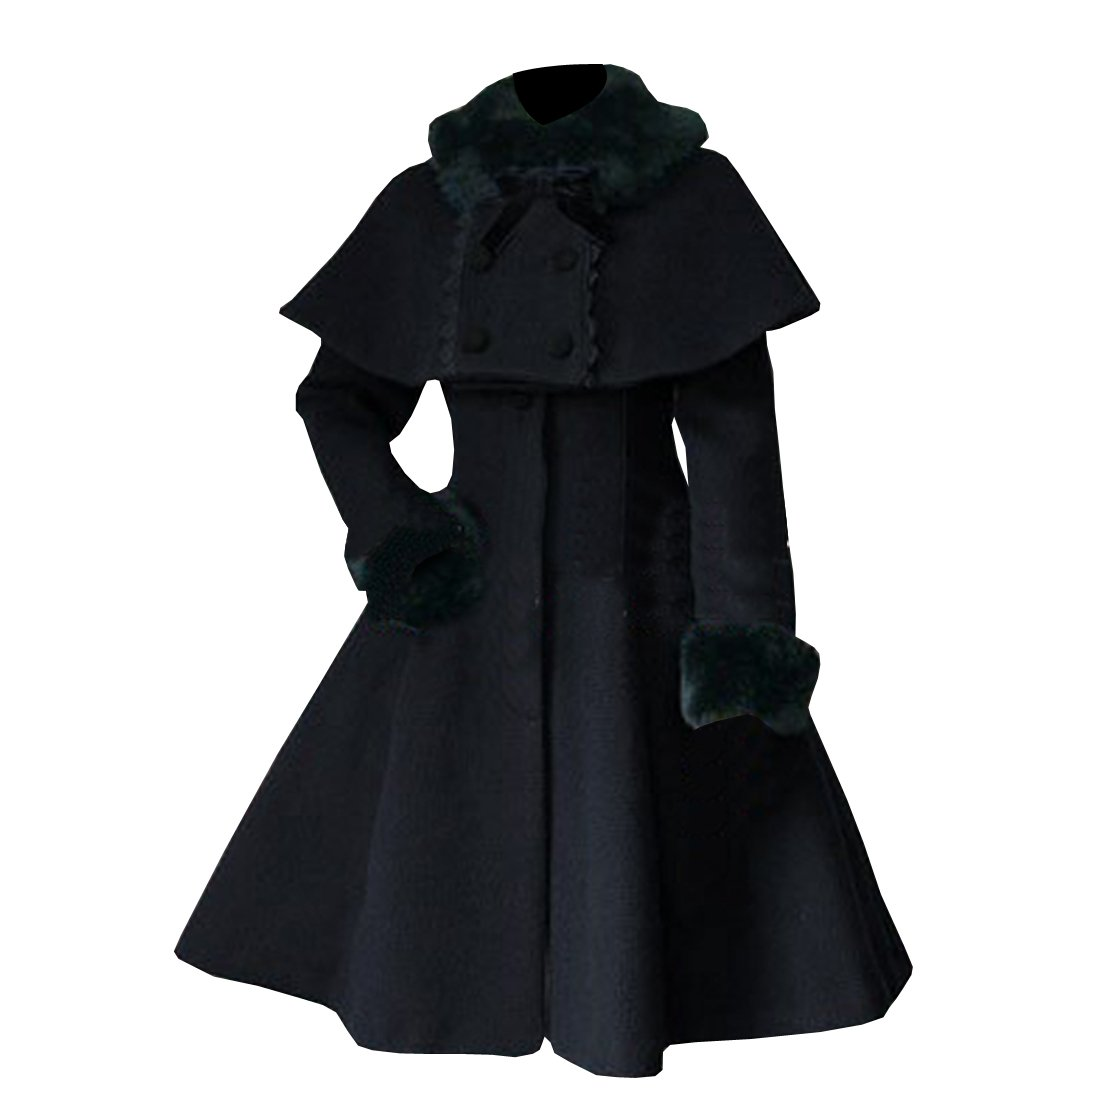 Partiss Women's Sweet Lolita Faux Fur Cape Overcoat, Chinese Large, Black